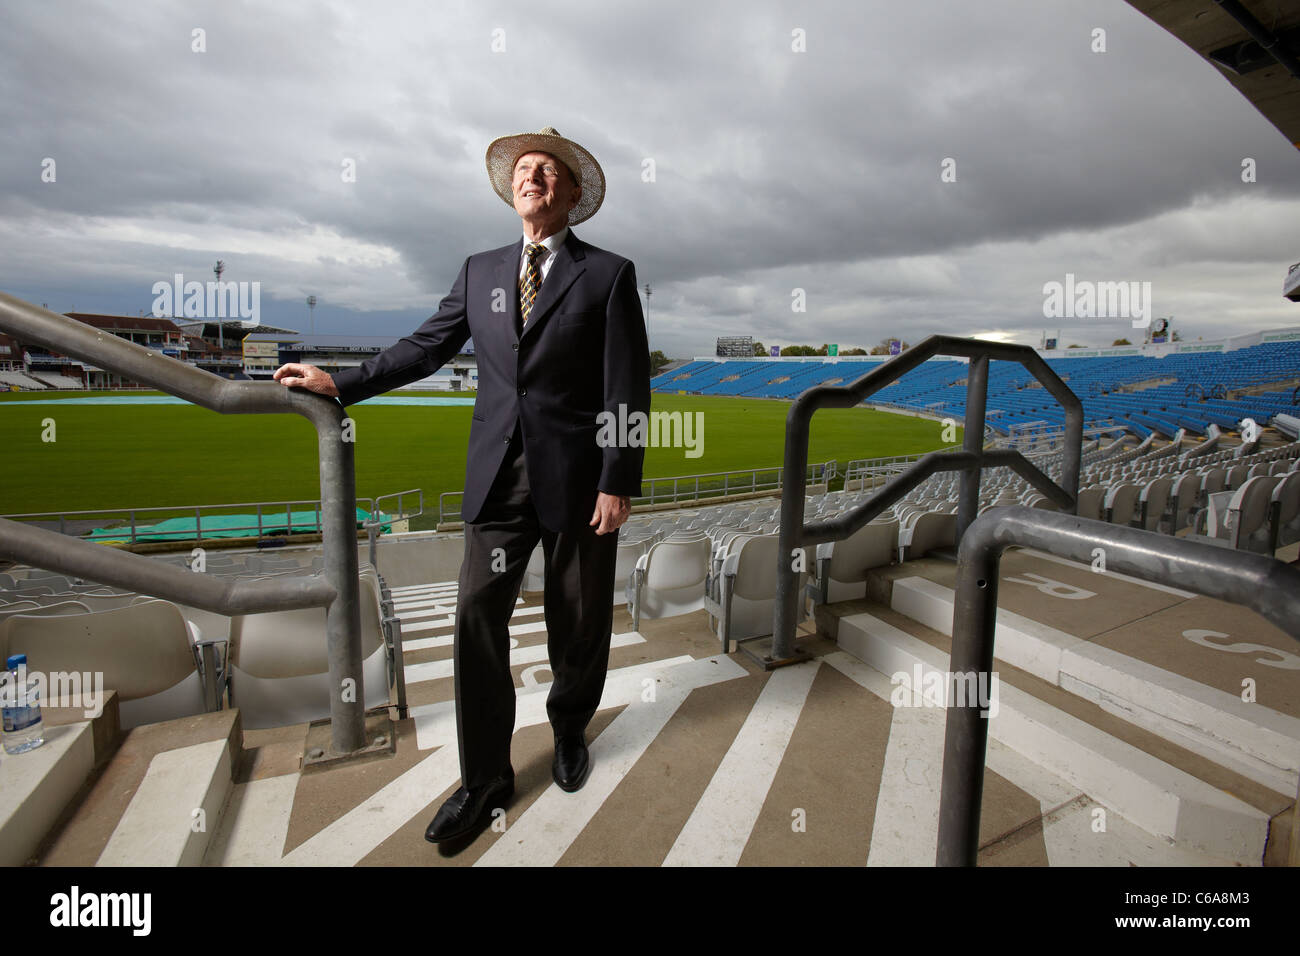 Geoffrey Boycott pictured at Yorkshire County Cricket Club, 19th October 2010 - Stock Image